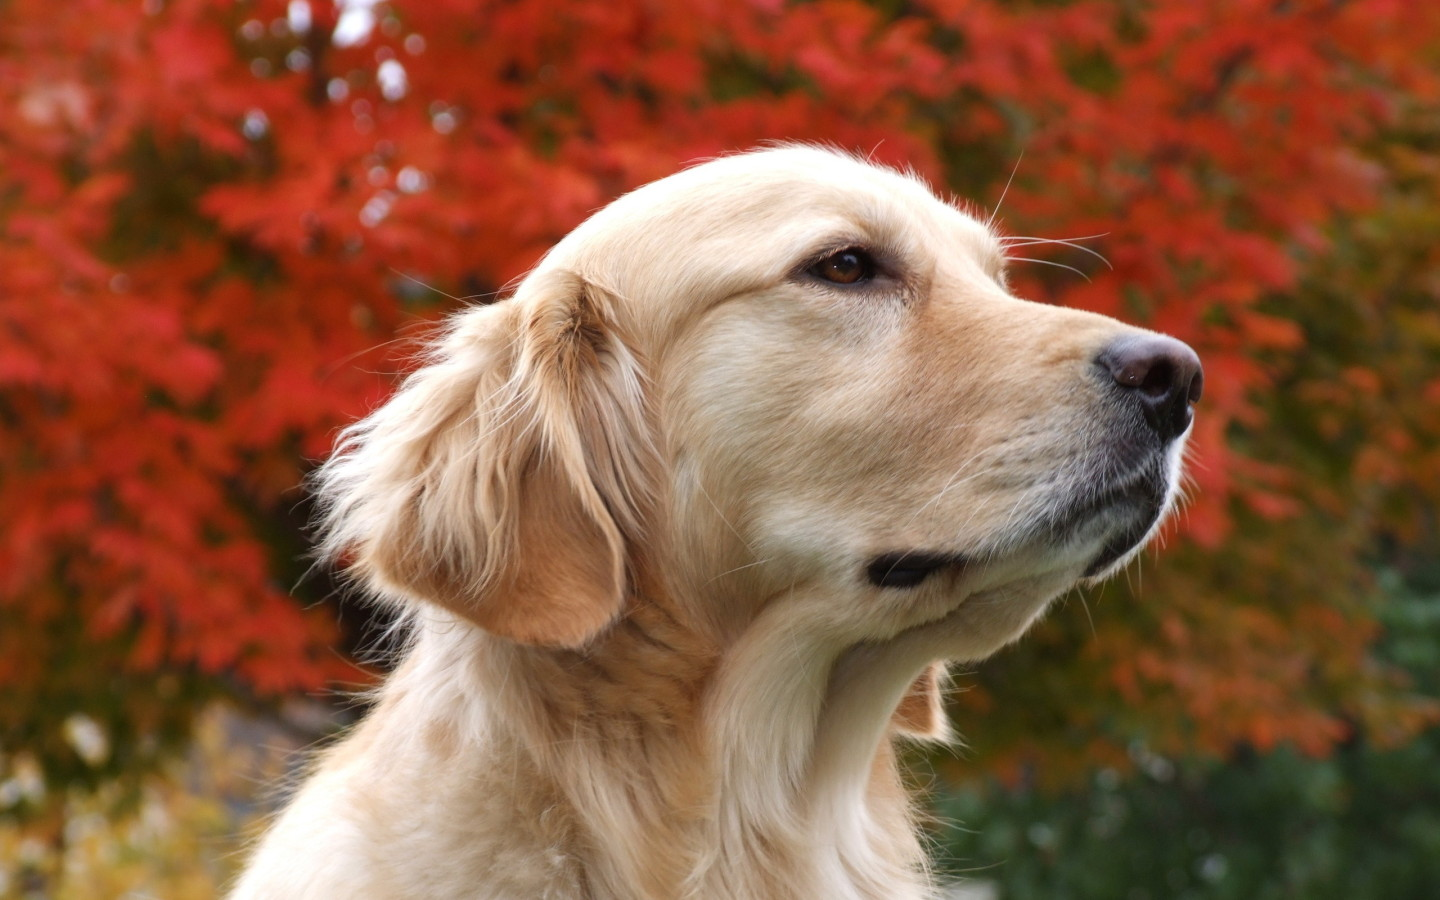 All Wallpapers Beautiful Dog Hd Wallpapers 1440x900